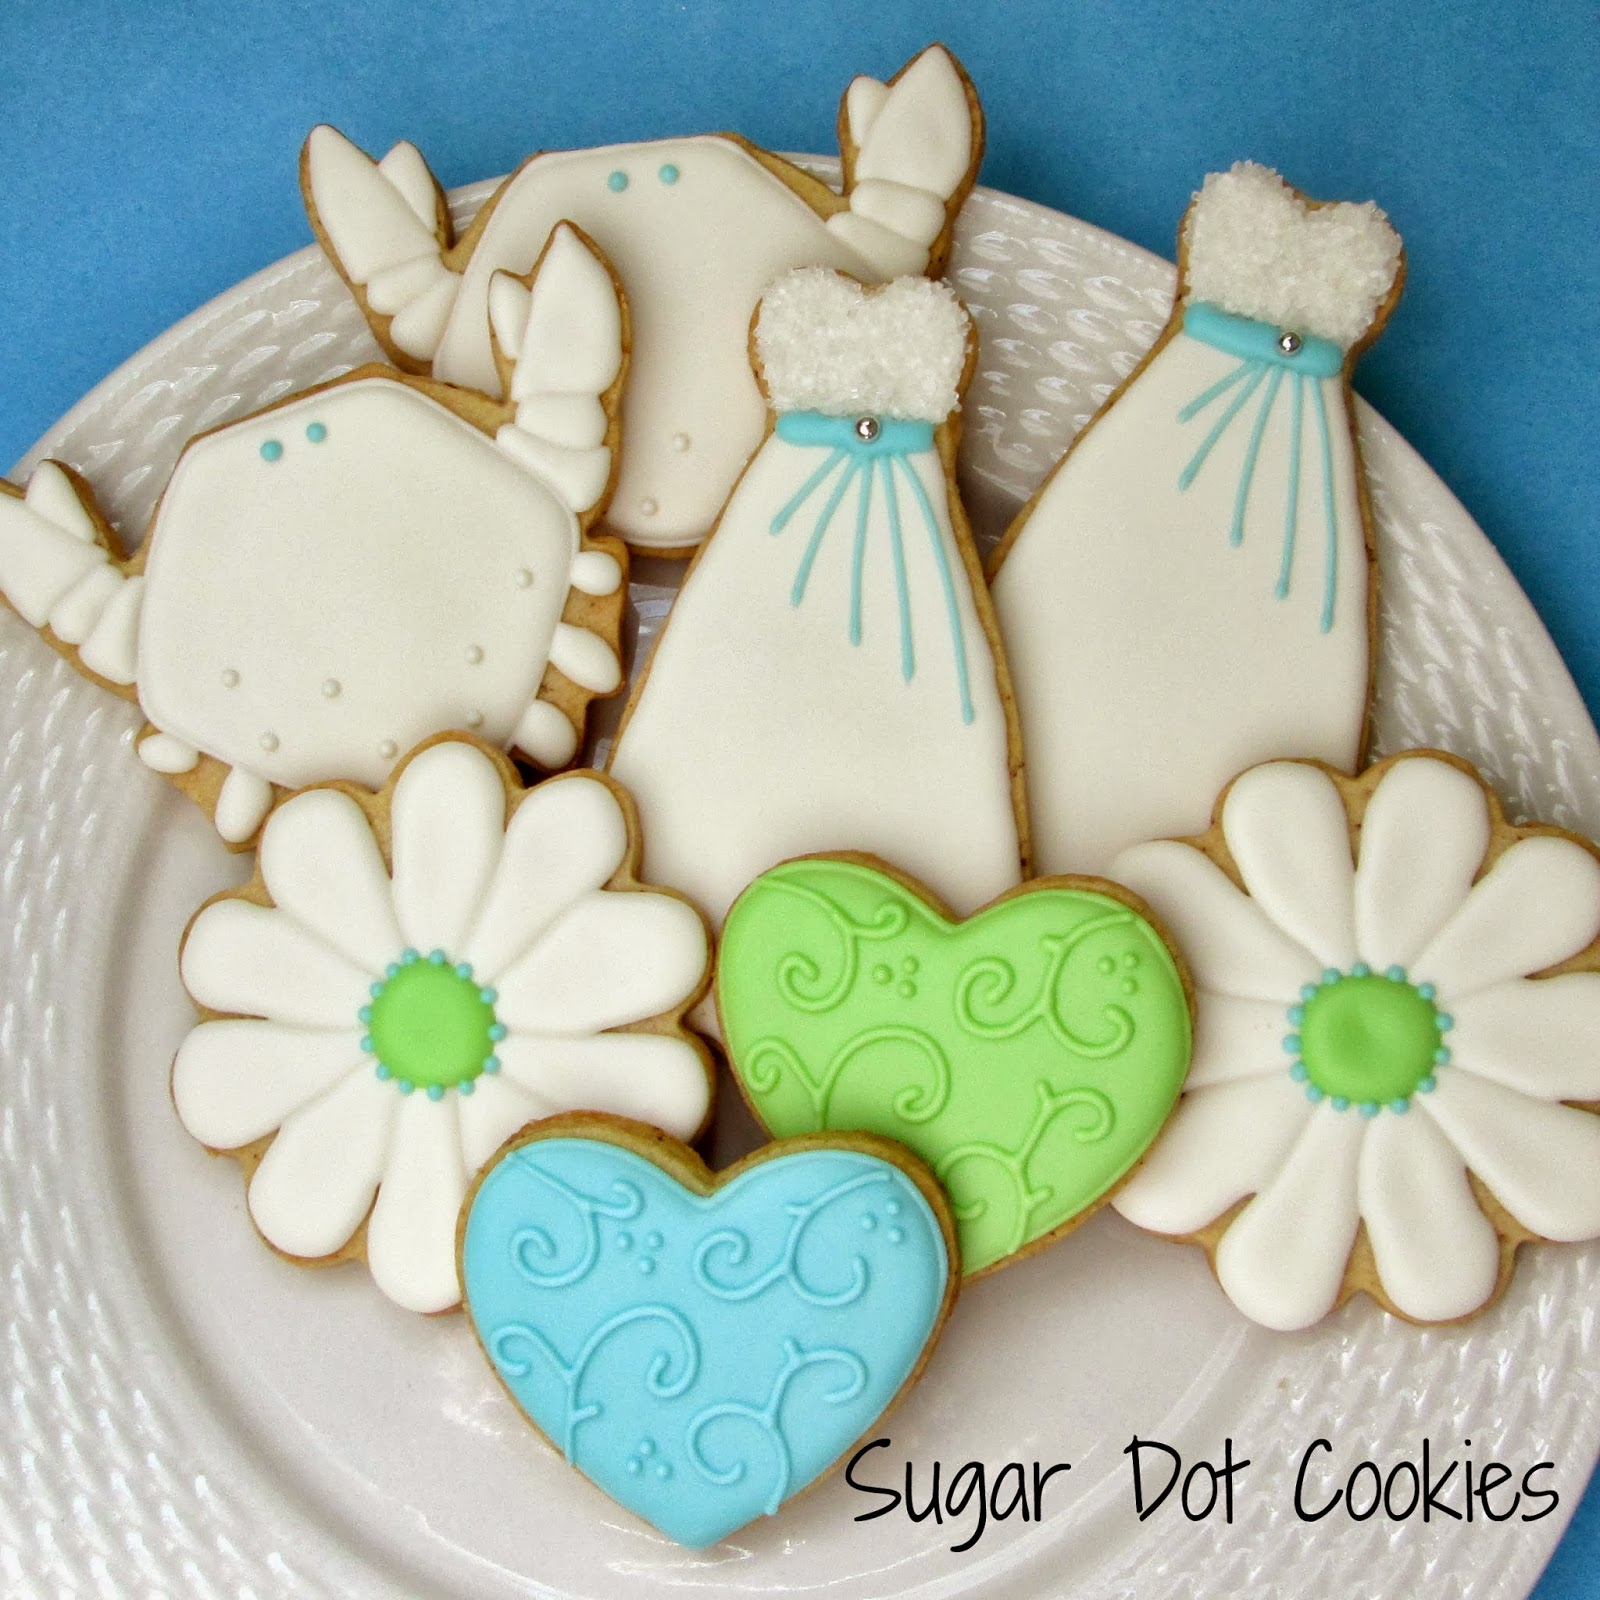 Sugar Dot Cookies Bridal Shower